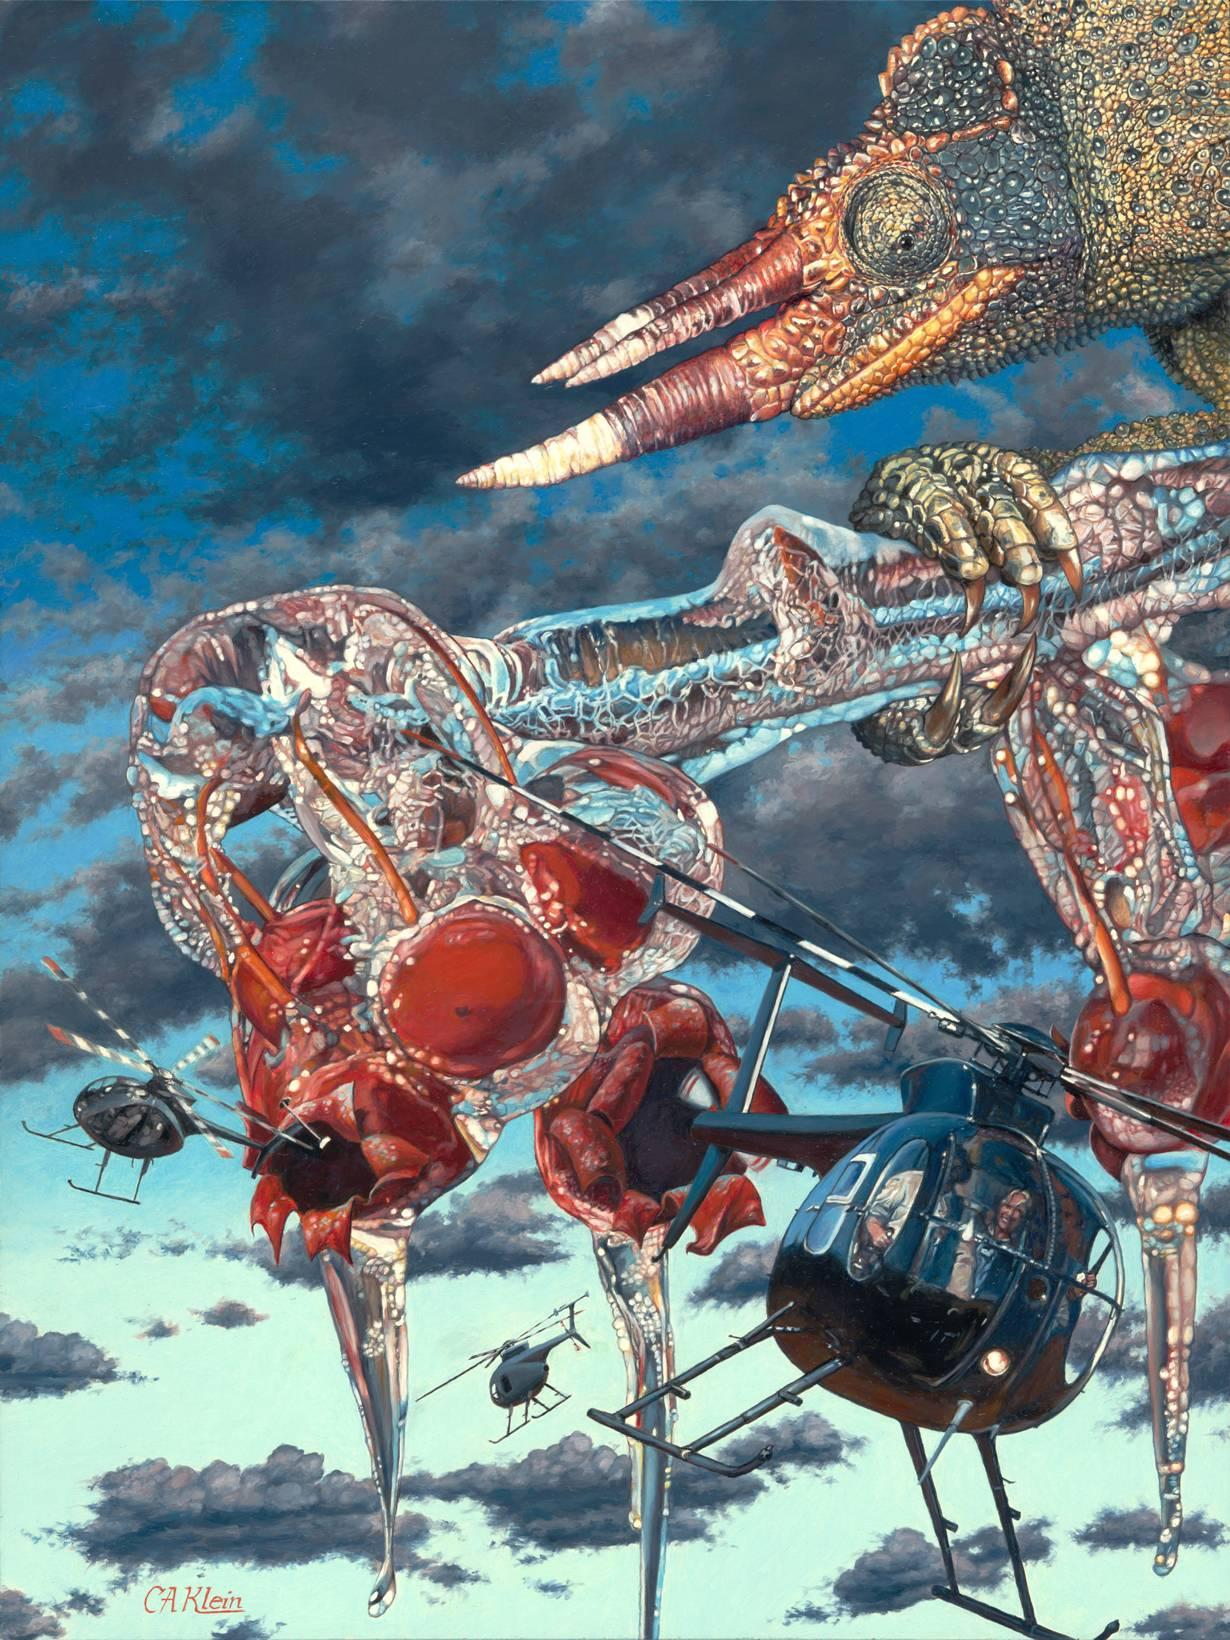 Heli Hatchlings, Surreal Oil Painting - Giant Chameleons Crab Apples Helicopter